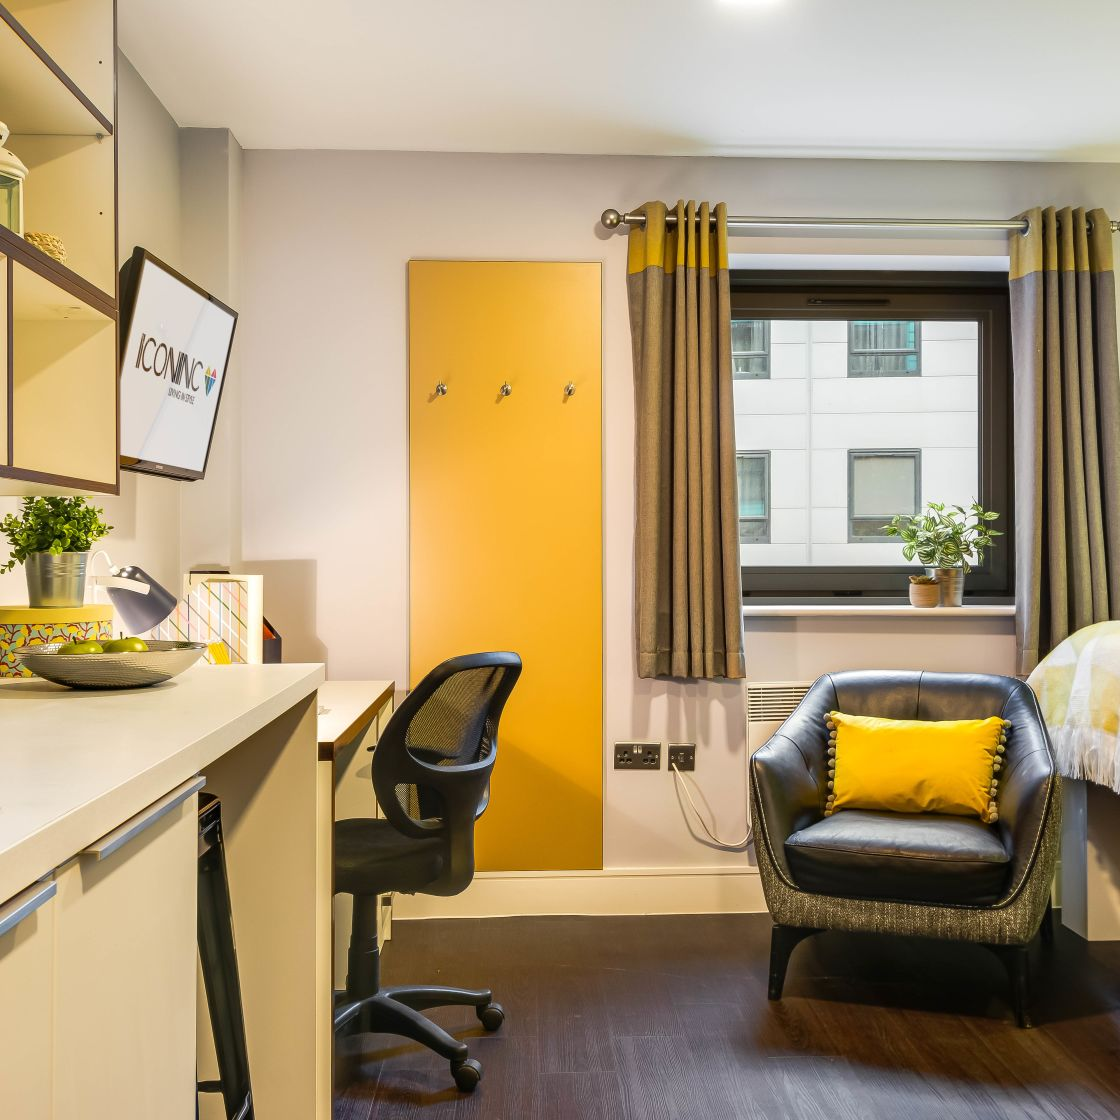 Smart Student Apartment in Leeds with raised bed, desk, tv and chair at IconInc, The Edge.